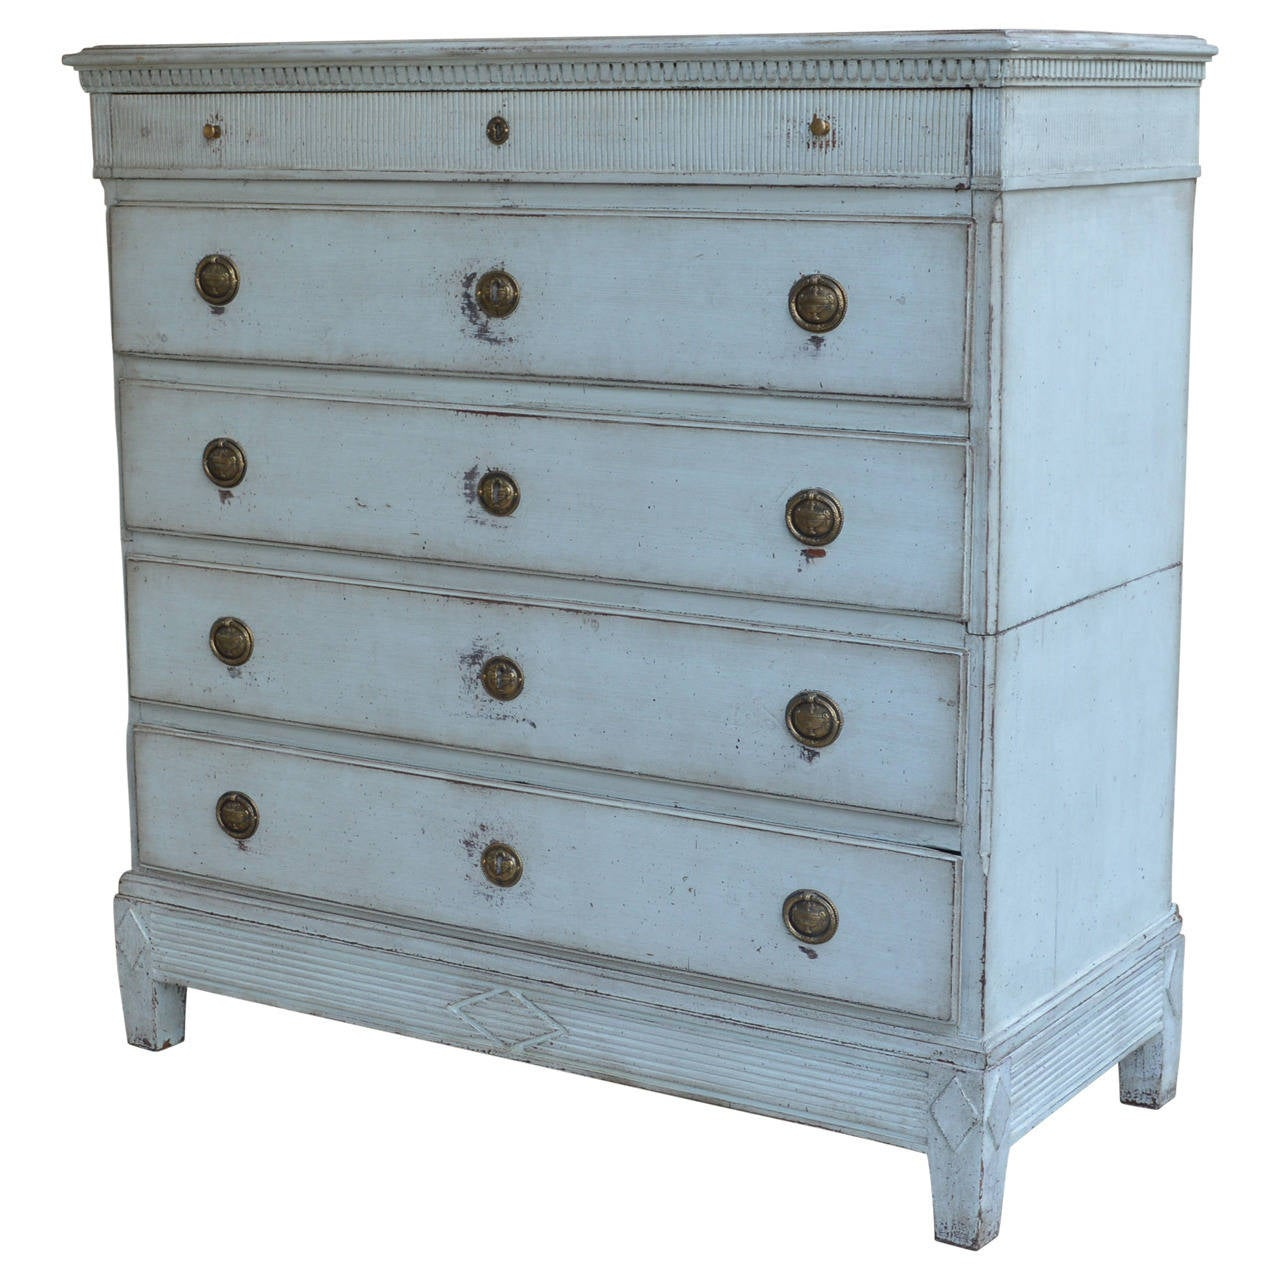 A beautiful Gustavian dresser with a pale blue painted finish. Has five drawers, all with skeleton key access (key included). Chest breaks up in three parts for easier moving around.